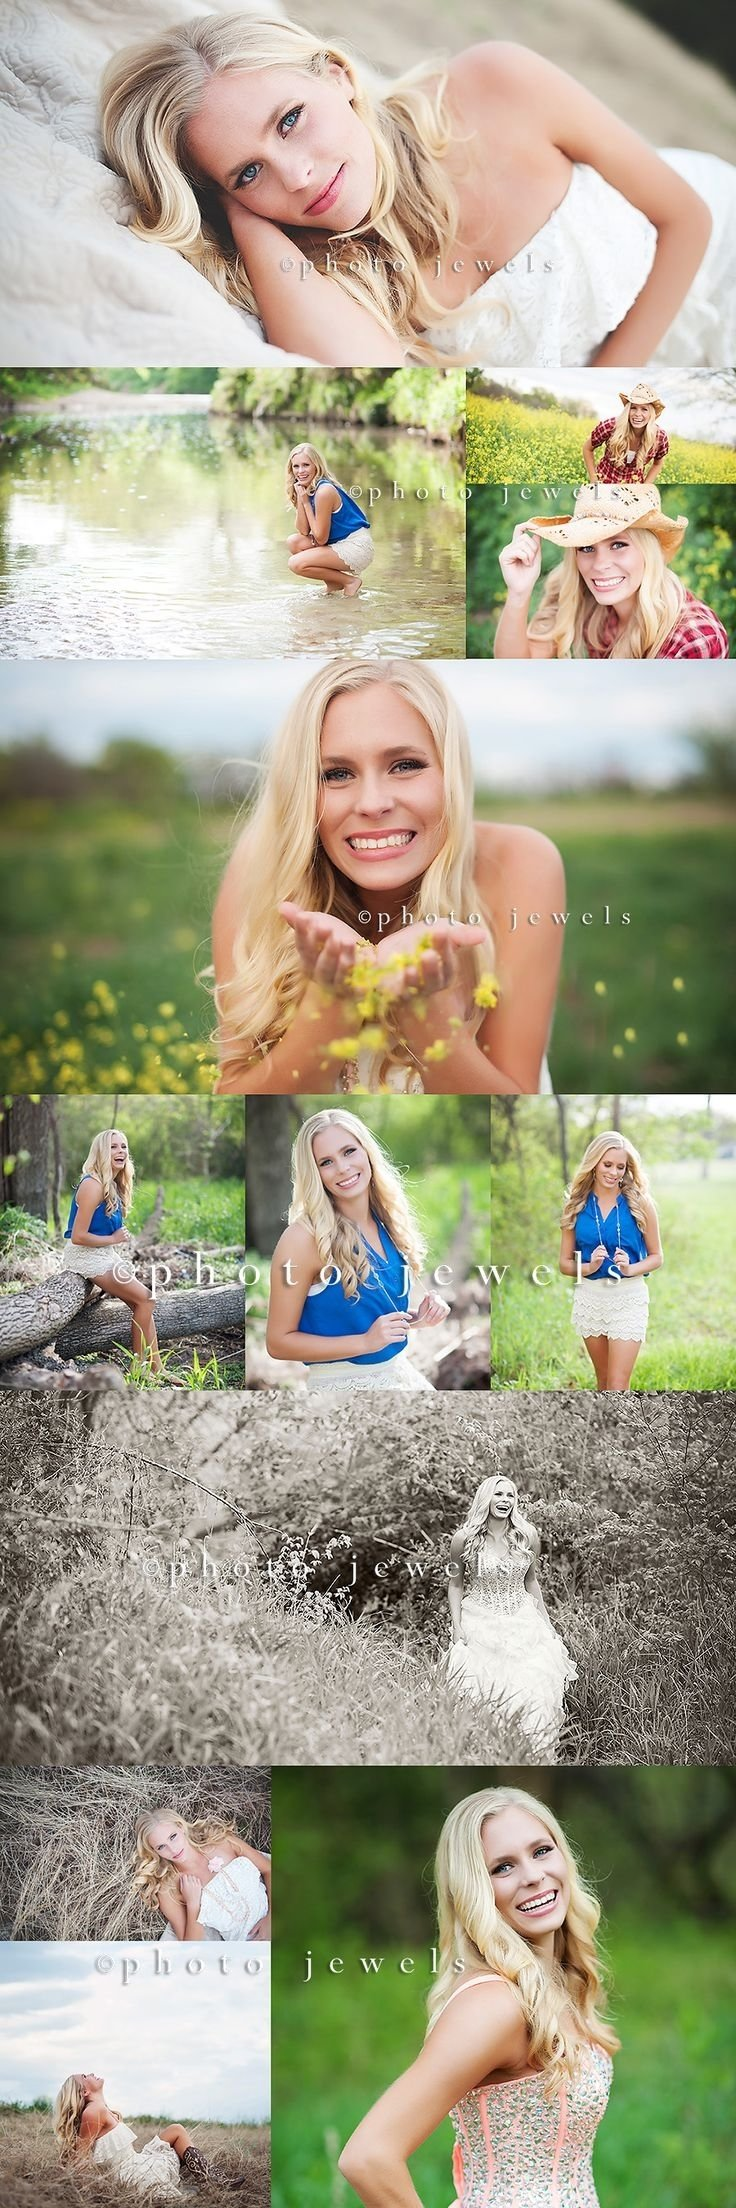 10 Pretty Senior Picture Ideas For Girls Outside 258 best senior picture ideas images on pinterest photo poses